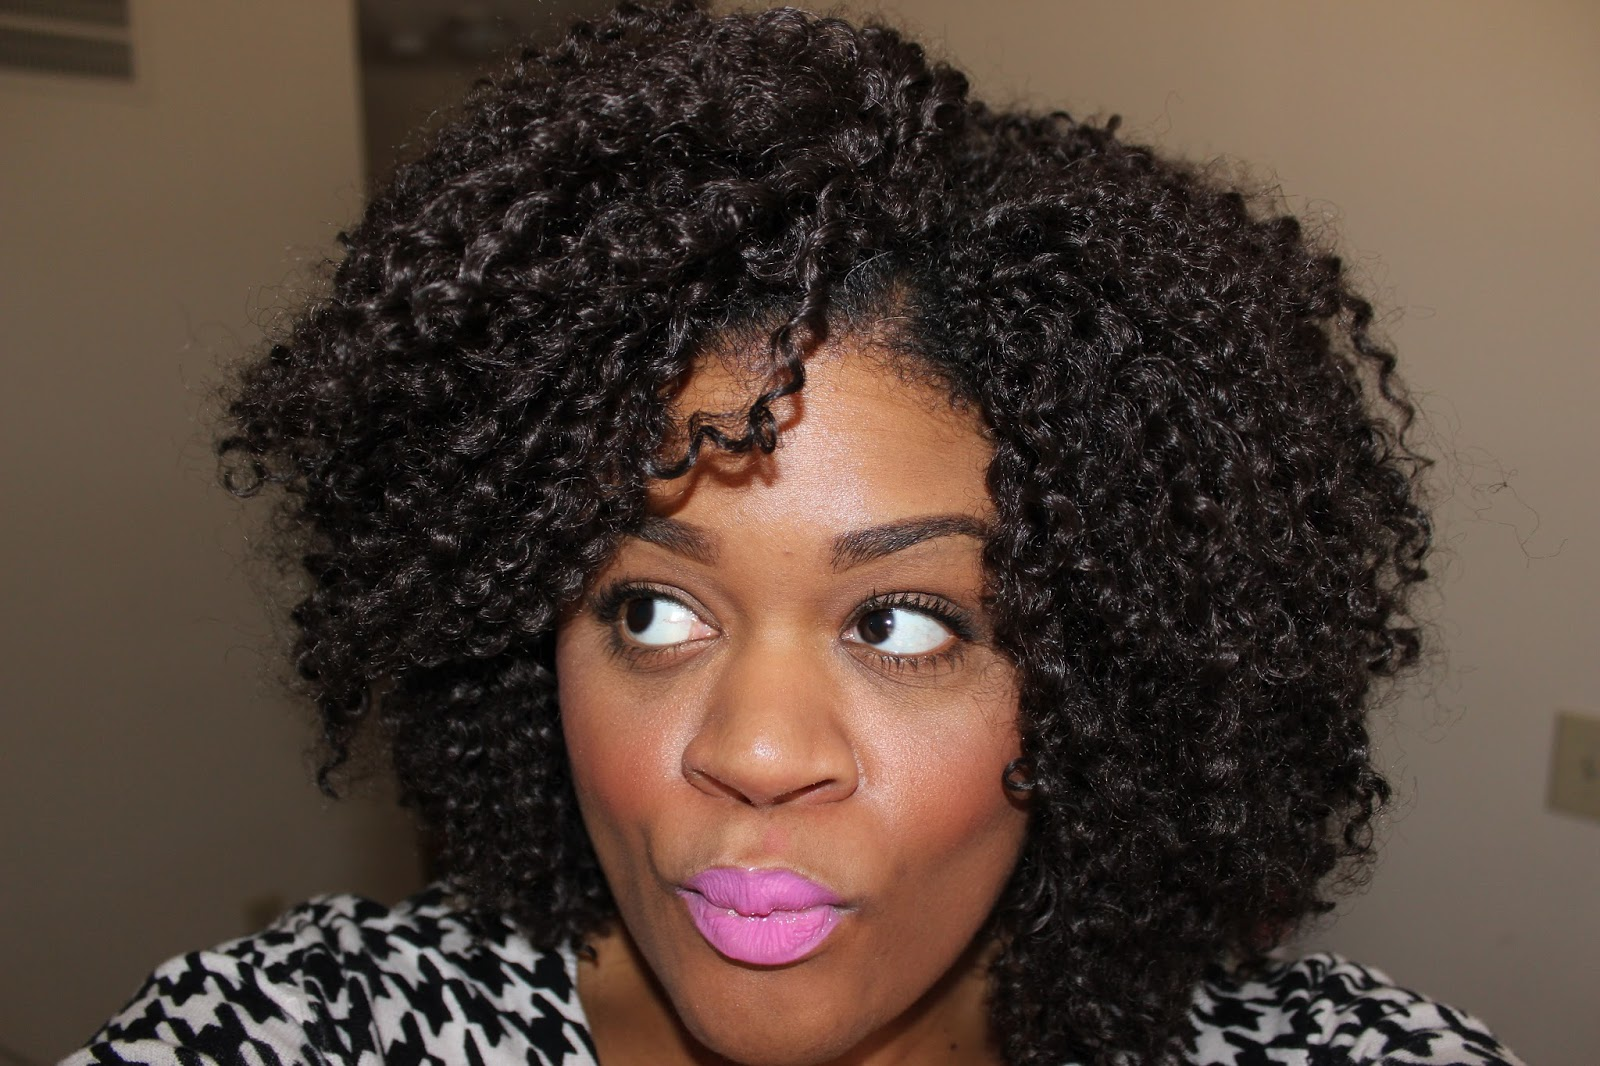 Crochet Hair For Braids : FabEllis: Natural Hair How I Maintain My Crochet Braids